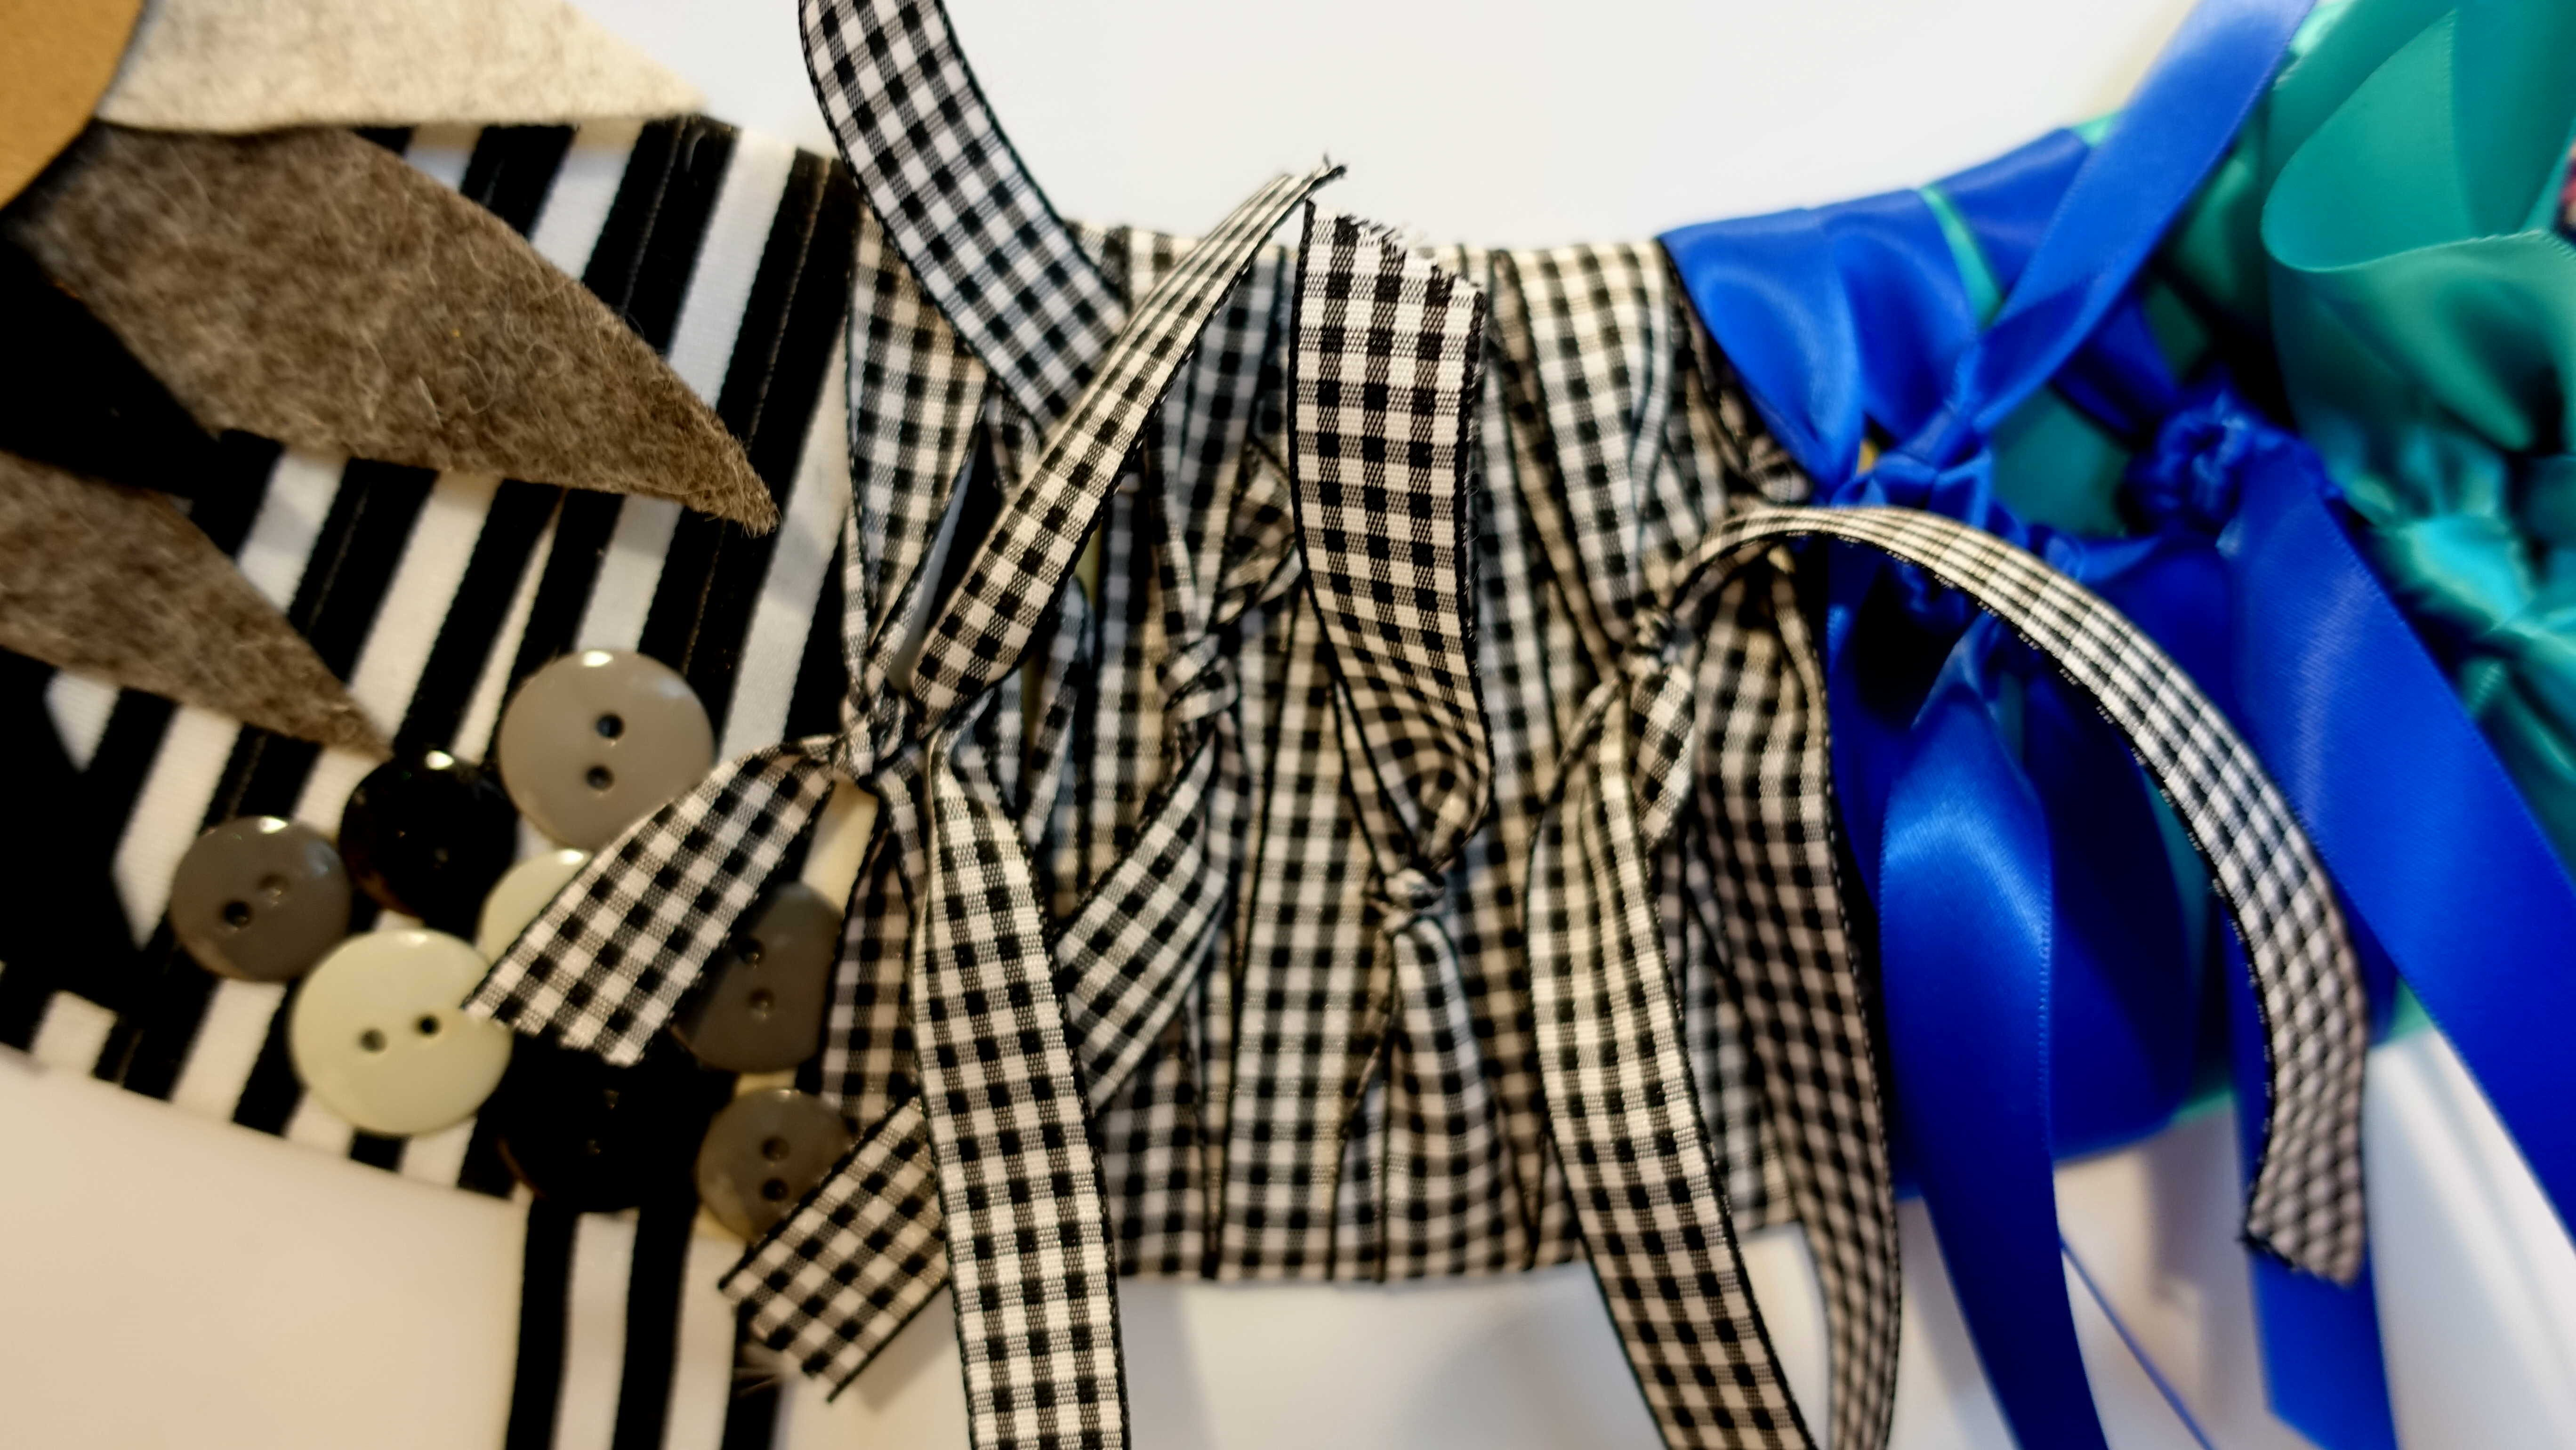 Free stock photo of bows, buttons, gingham, ribbons